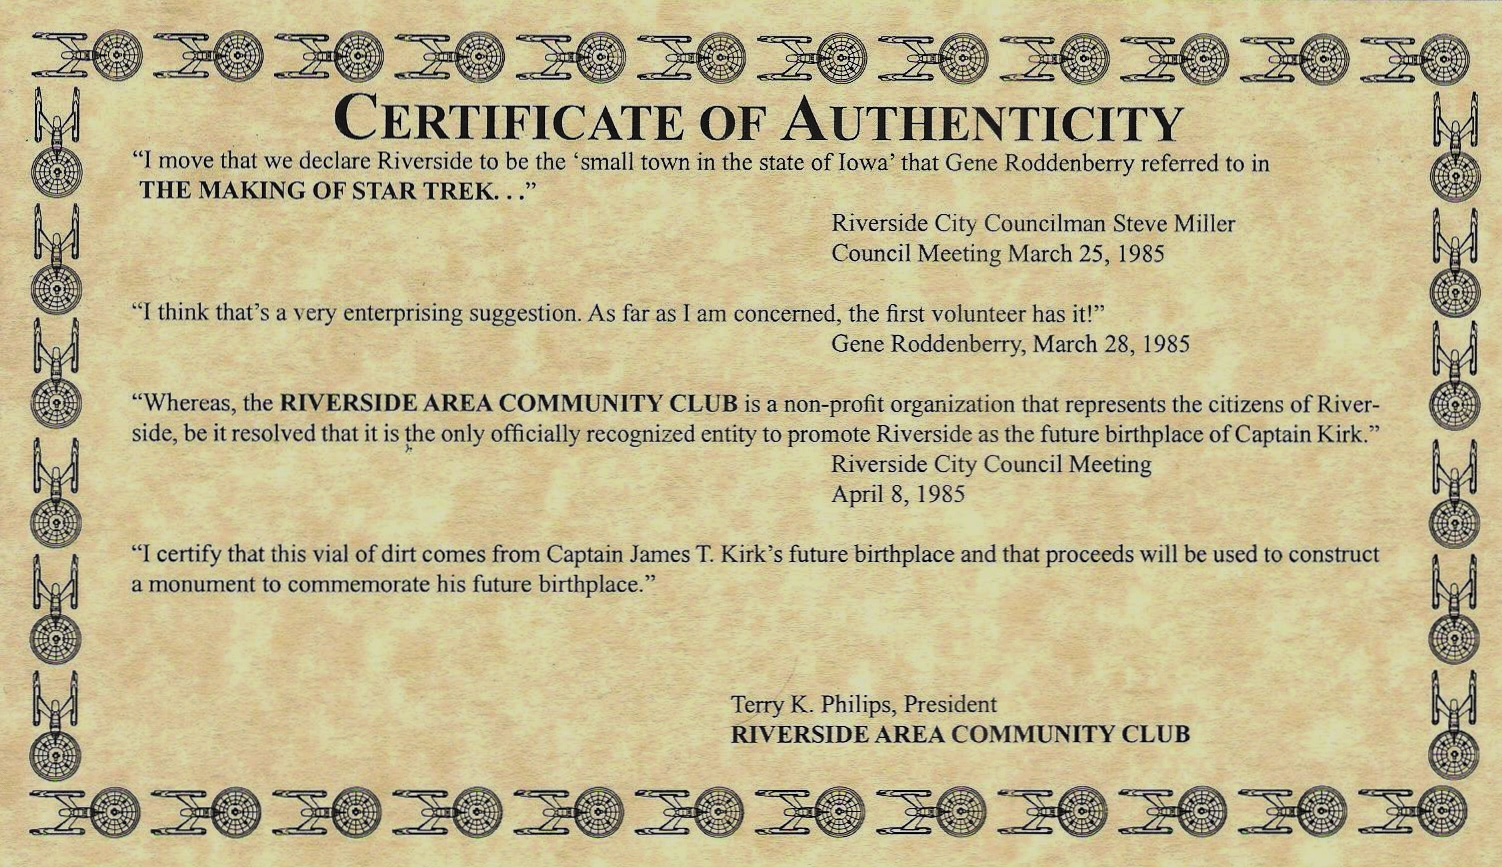 Certificate of authenticity template microsoft word image certificate of authenticity template choice image templates certificate of authenticity template for publisher gallery certificate of yadclub Image collections